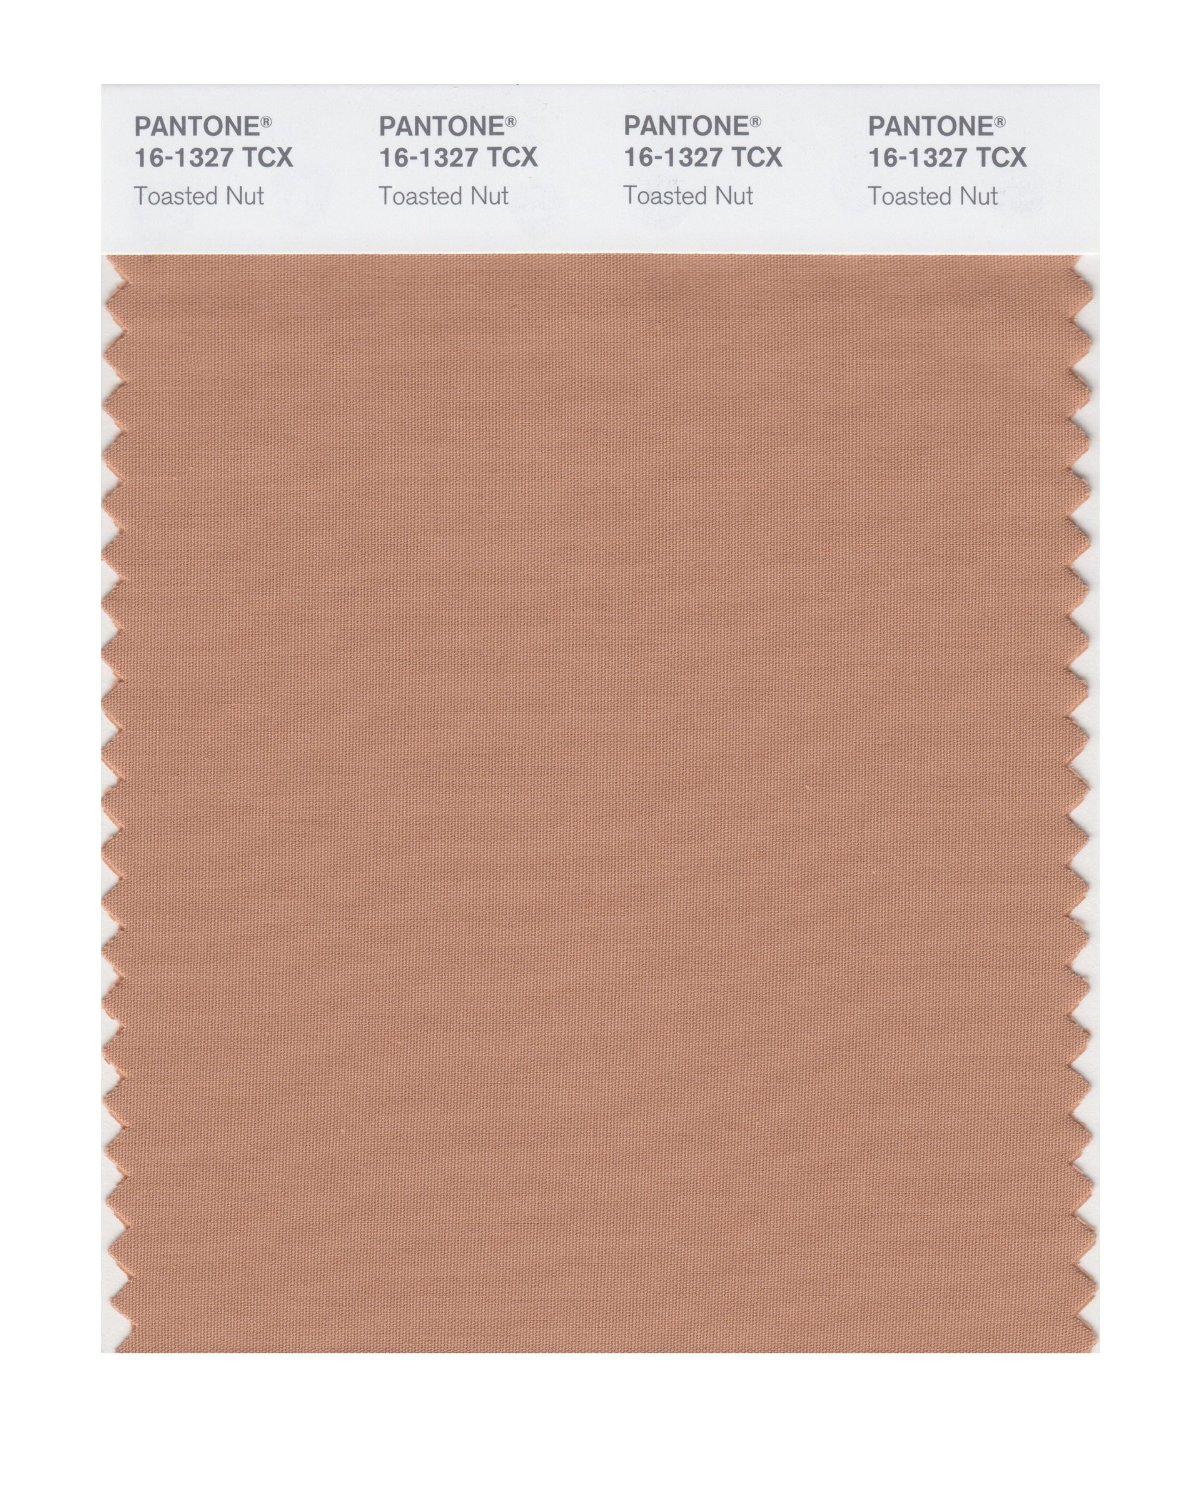 Pantone Smart Swatch 16-1327 Toasted Nut